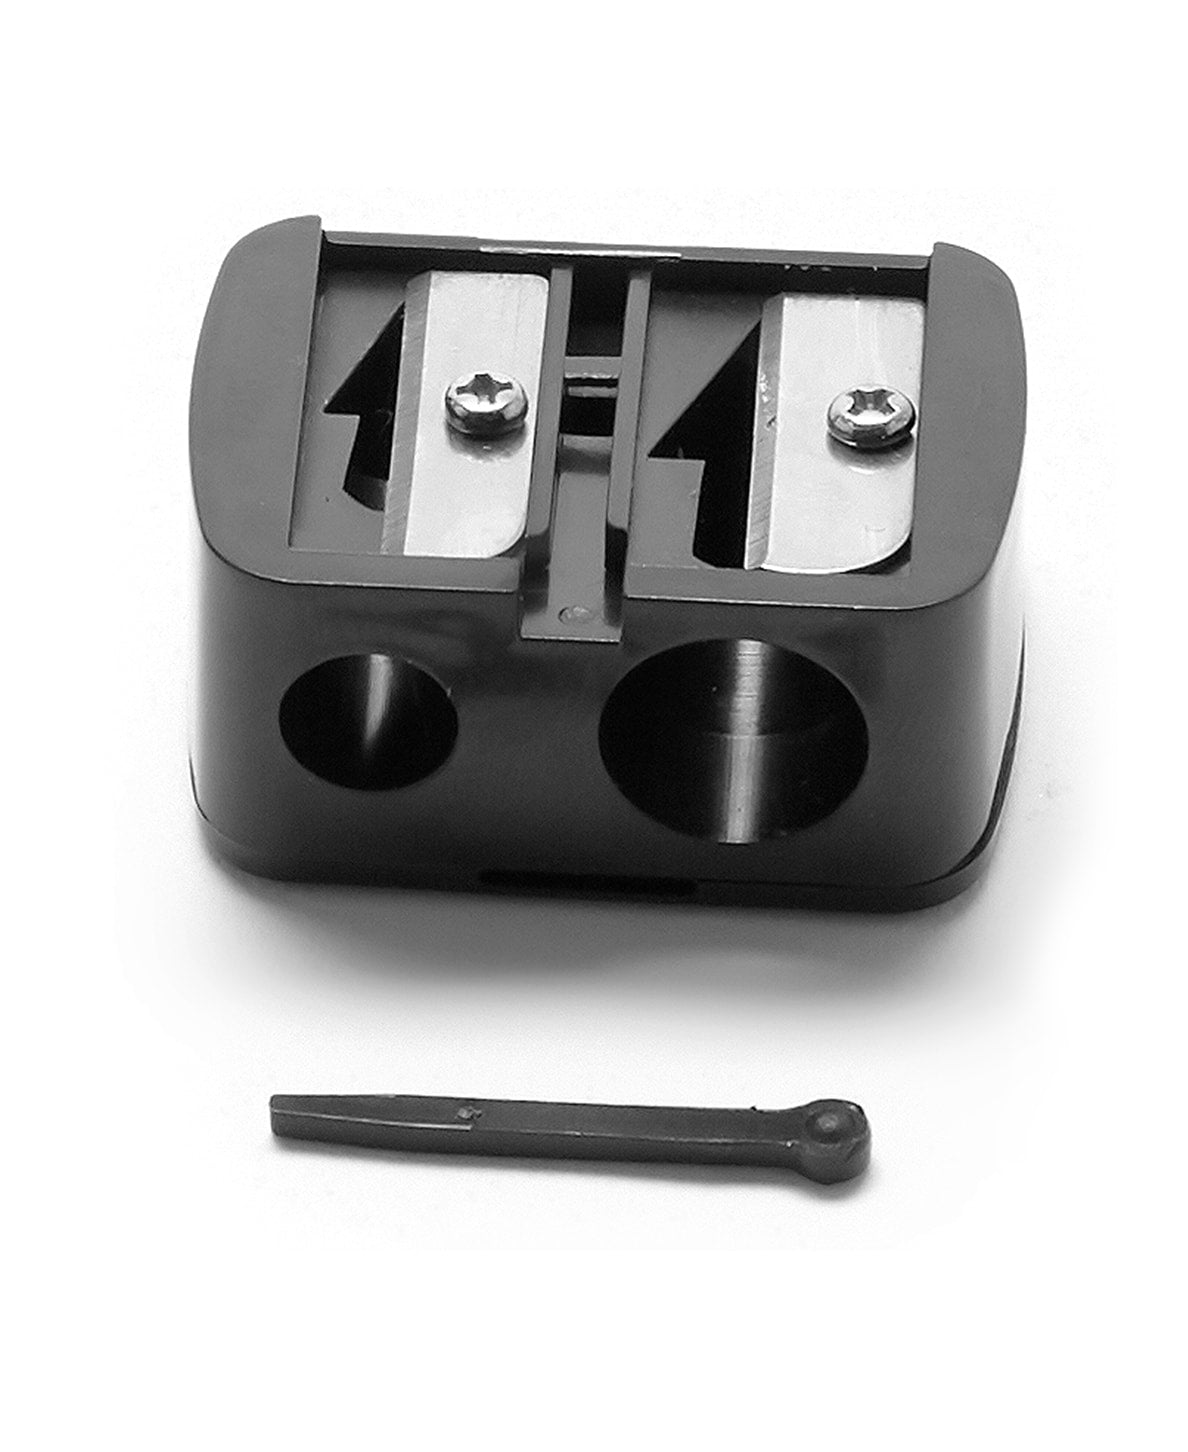 The BrowGal Pencil/Highlighter Sharpener